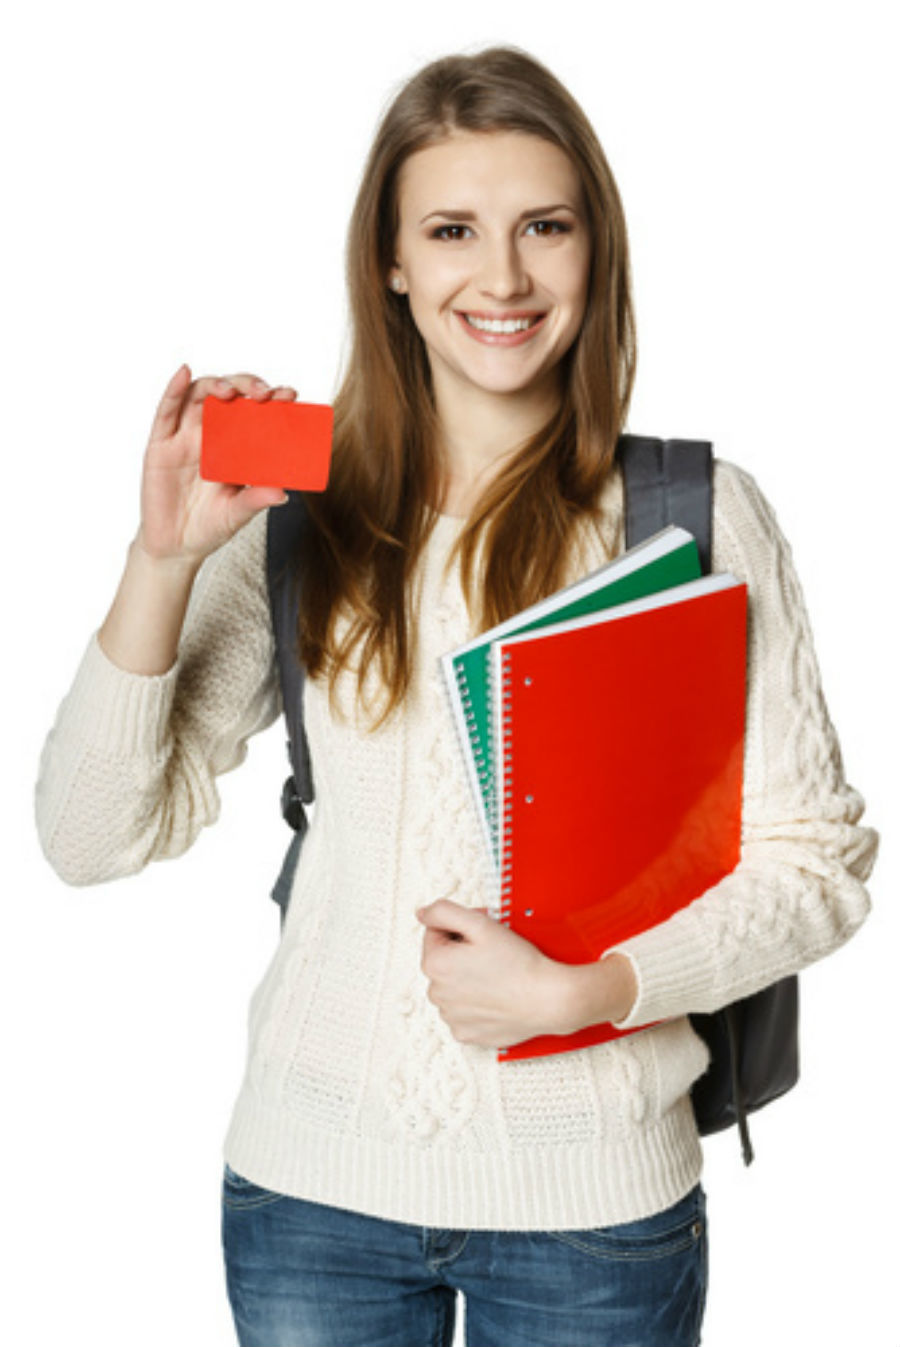 Best credit card options for college graduates